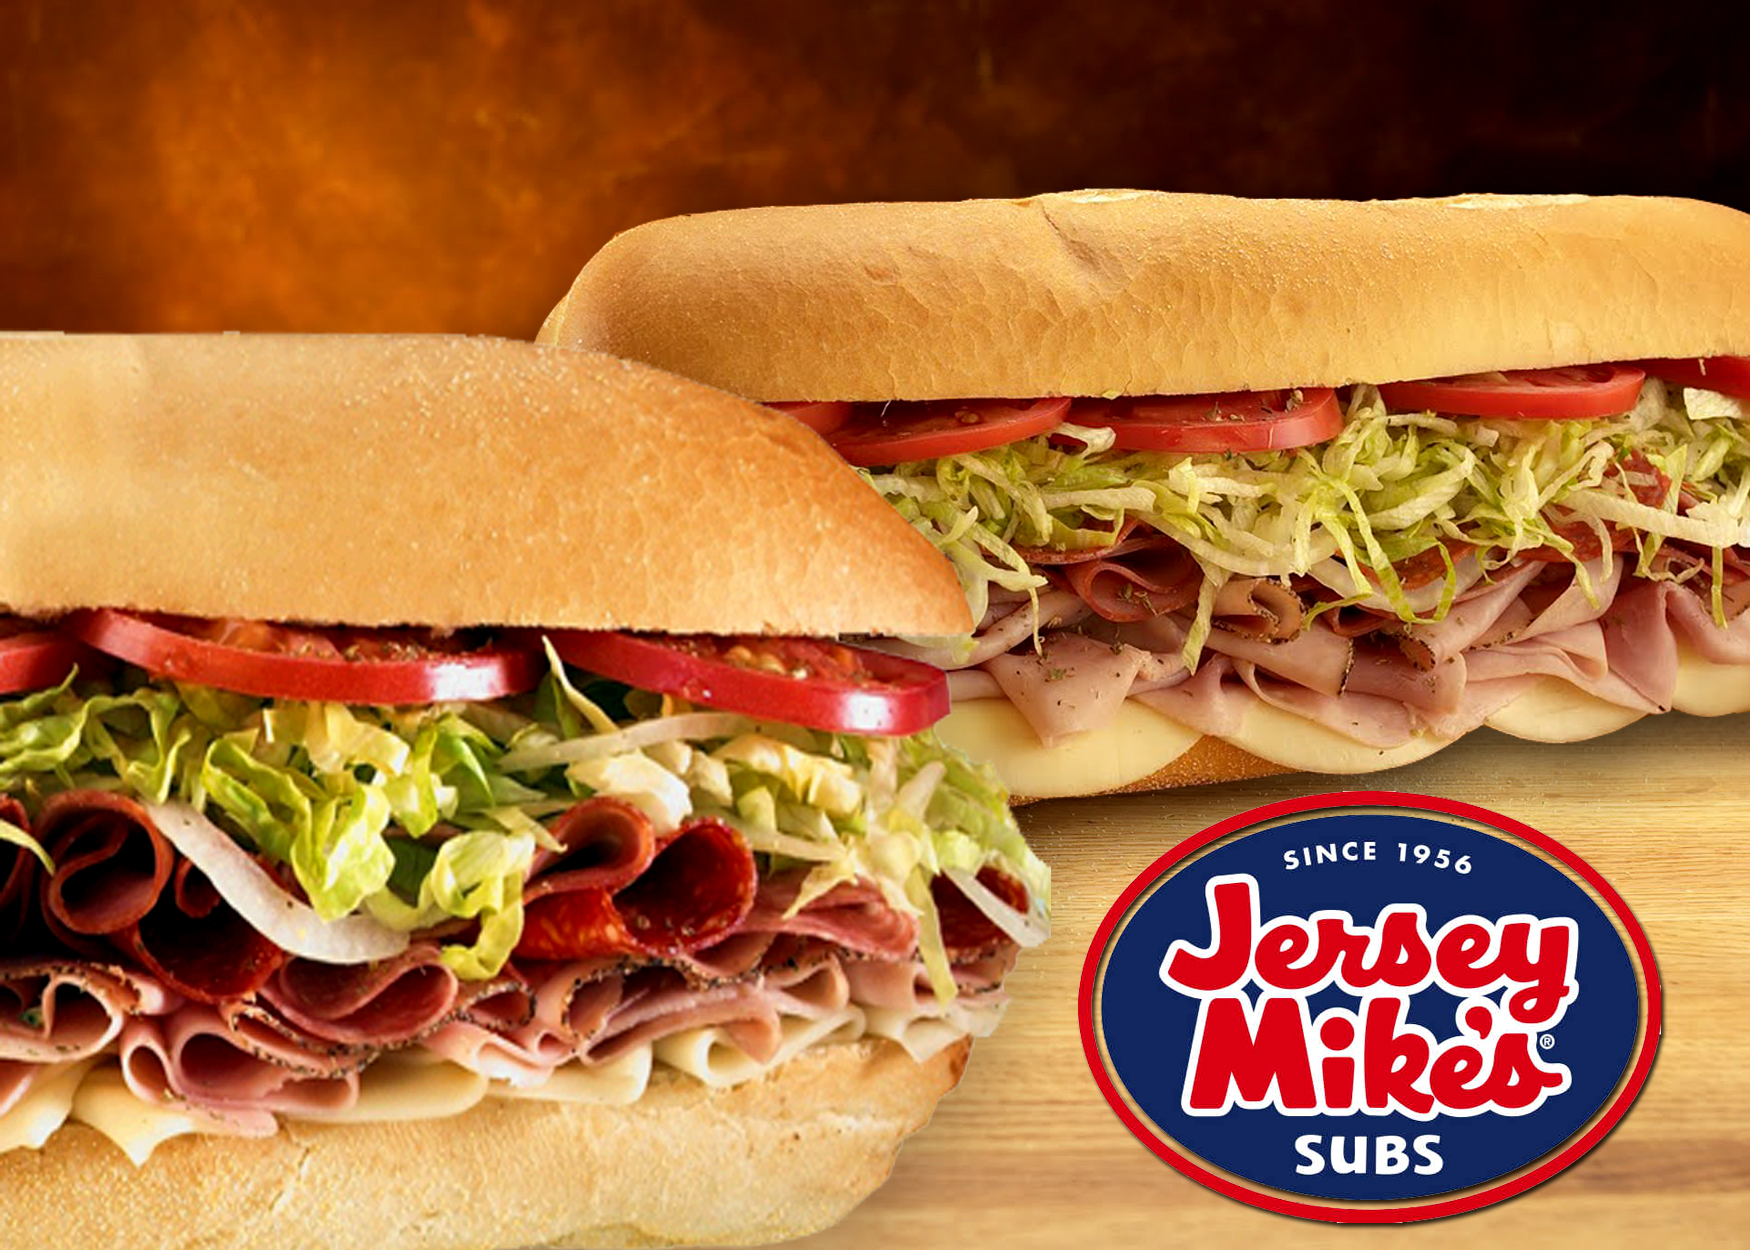 get-12-worth-of-delicious-sandwiches-and-drinks-for-6-501